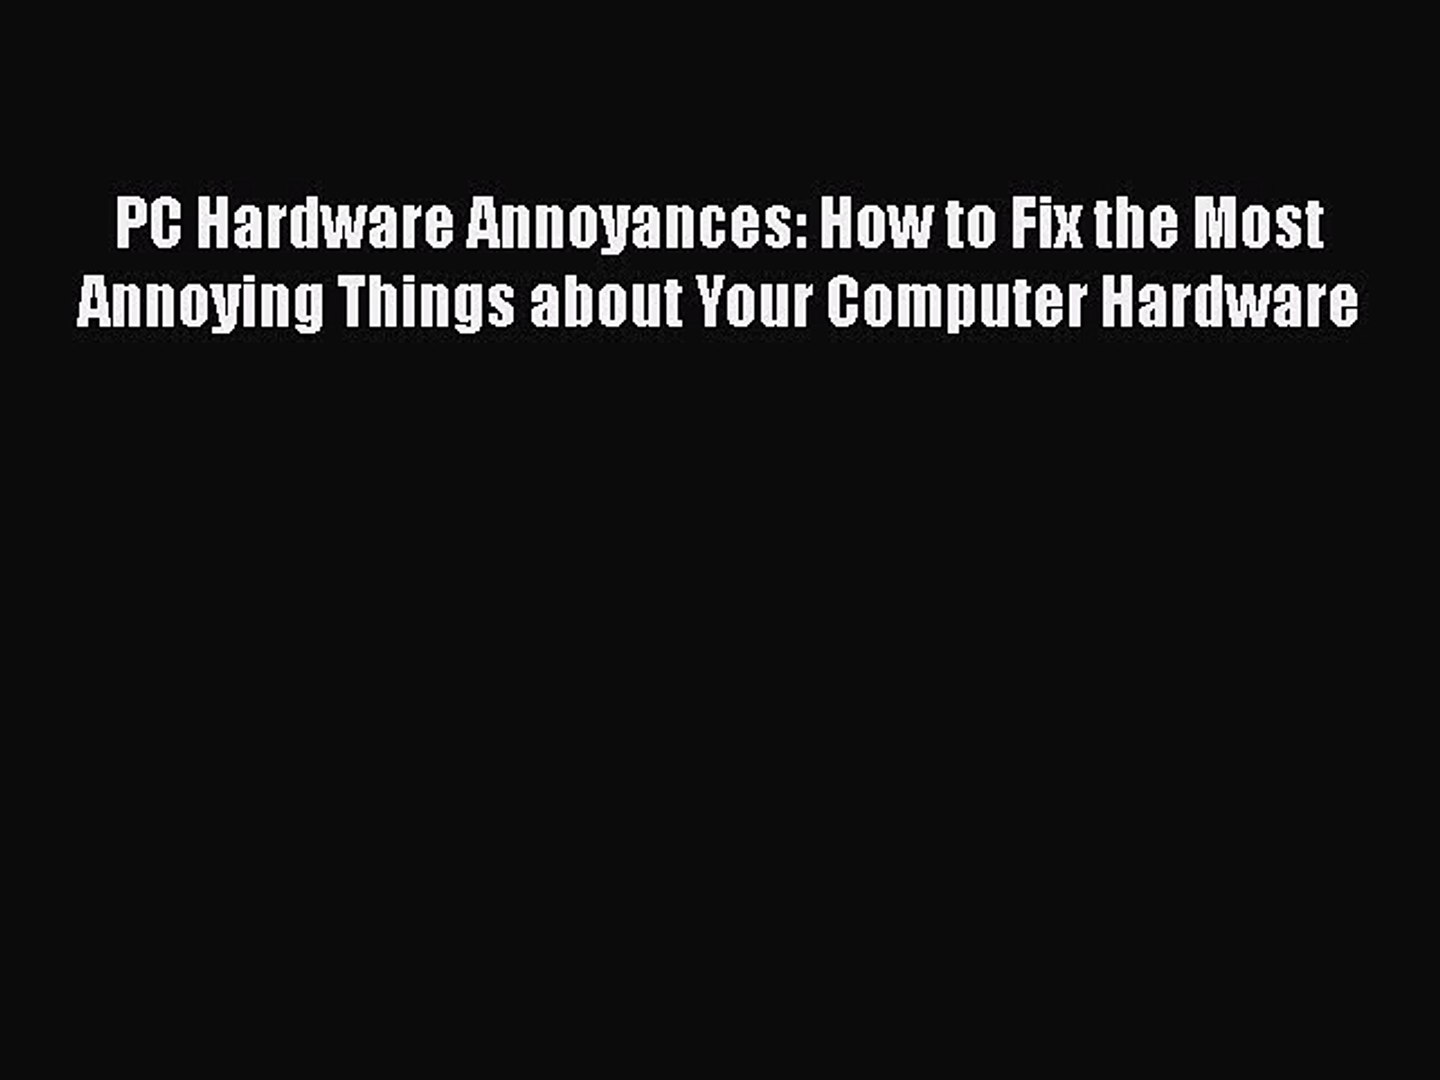 Read PC Hardware Annoyances: How to Fix the Most Annoying Things about Your Computer Hardware